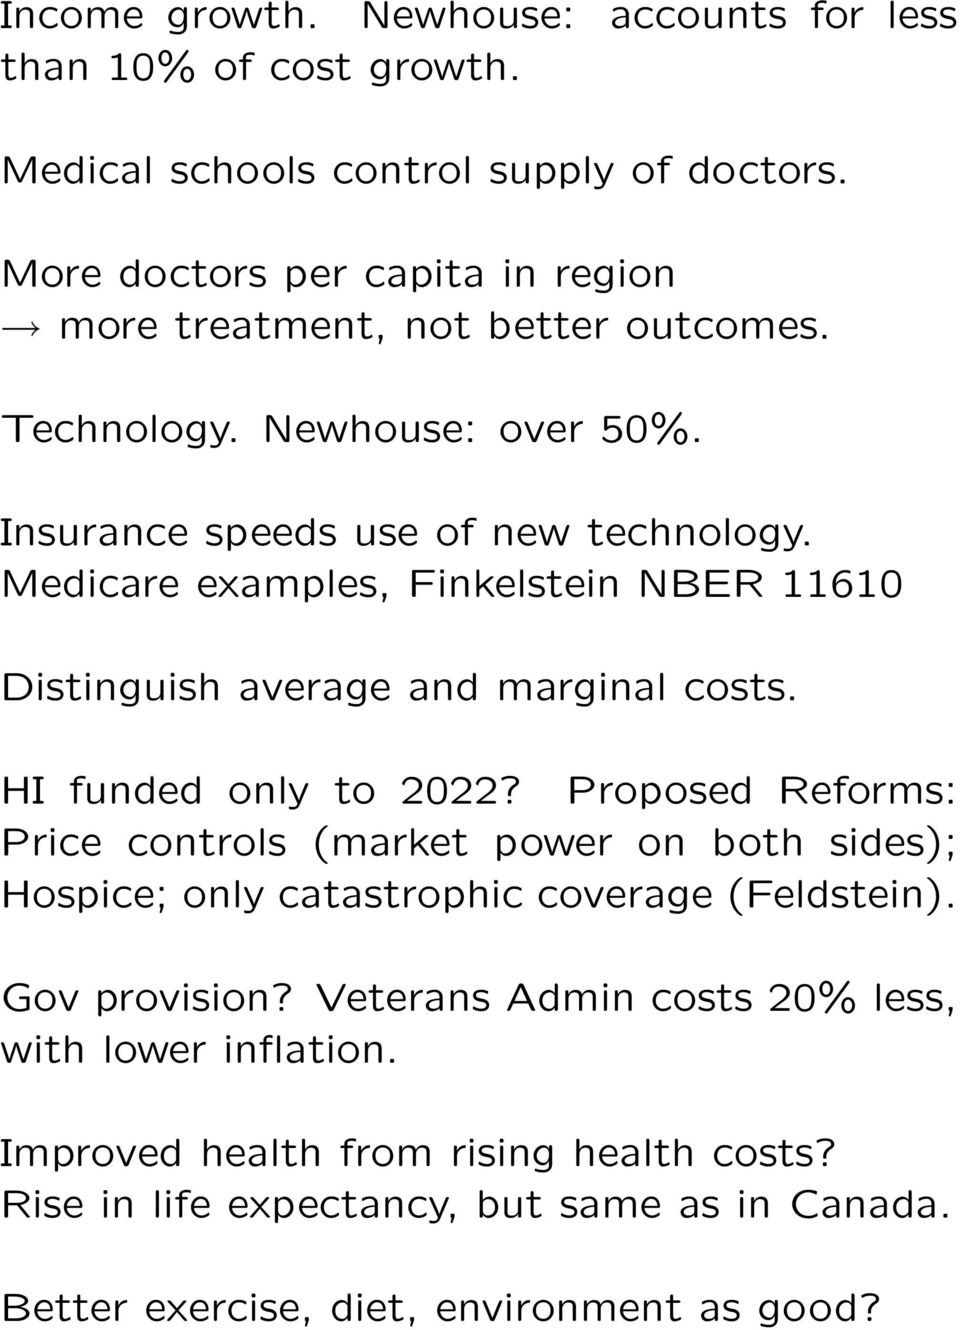 Medicare examples, Finkelstein NBER 11610 Distinguish average and marginal costs. HI funded only to 2022?